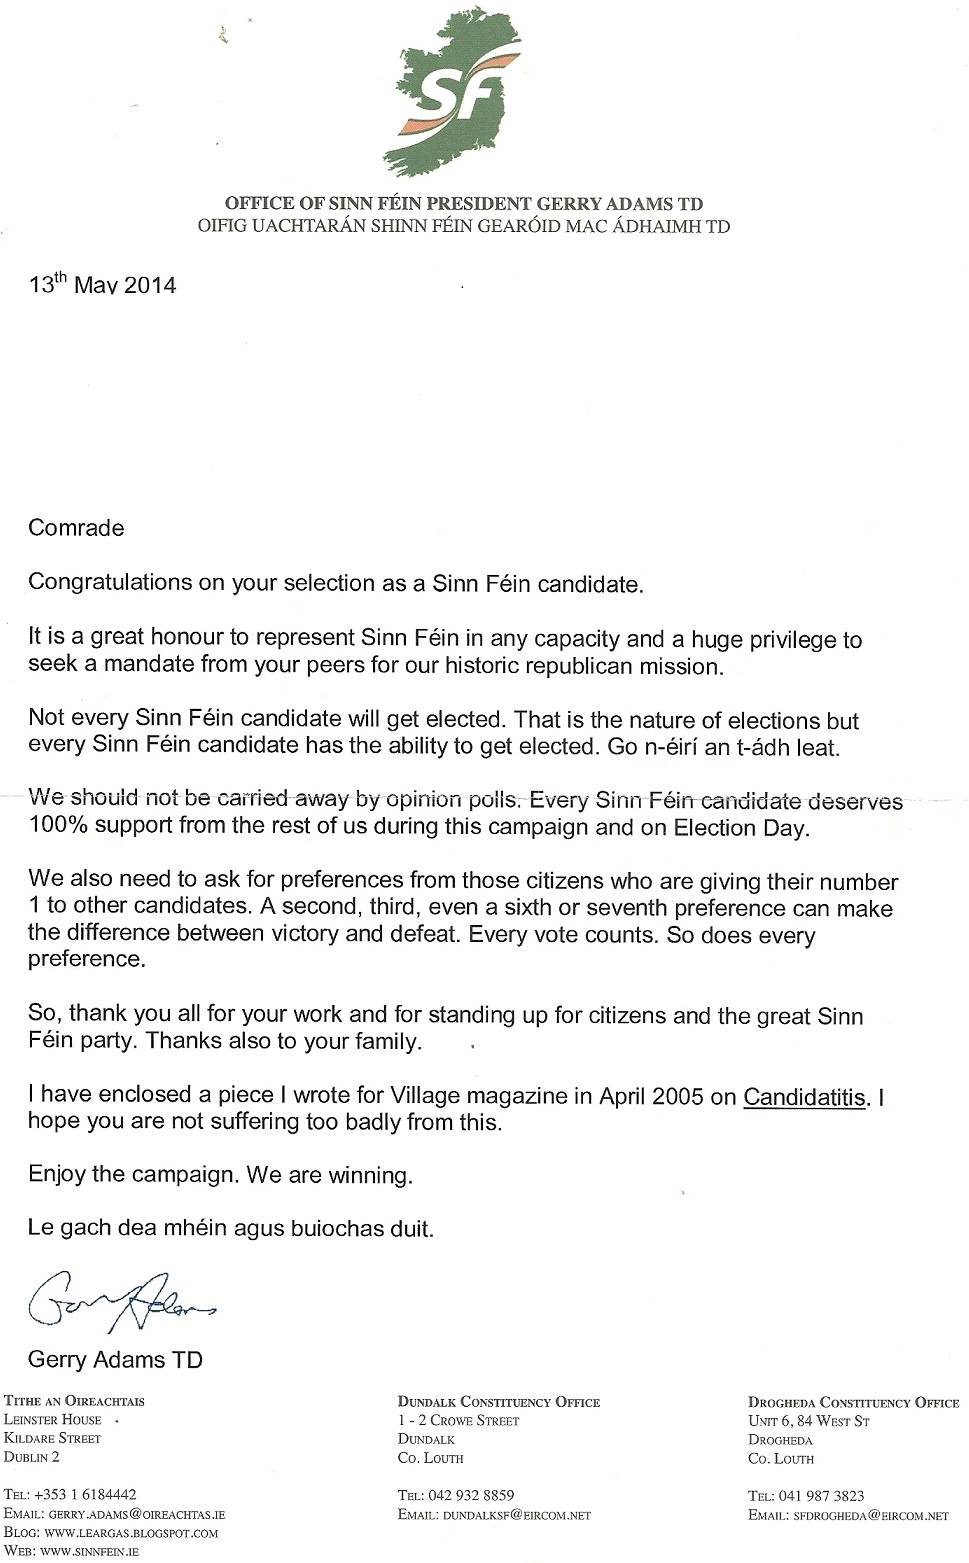 Letter and article from gerry adams to sinn fein 2014 local candisatelettersf1 thecheapjerseys